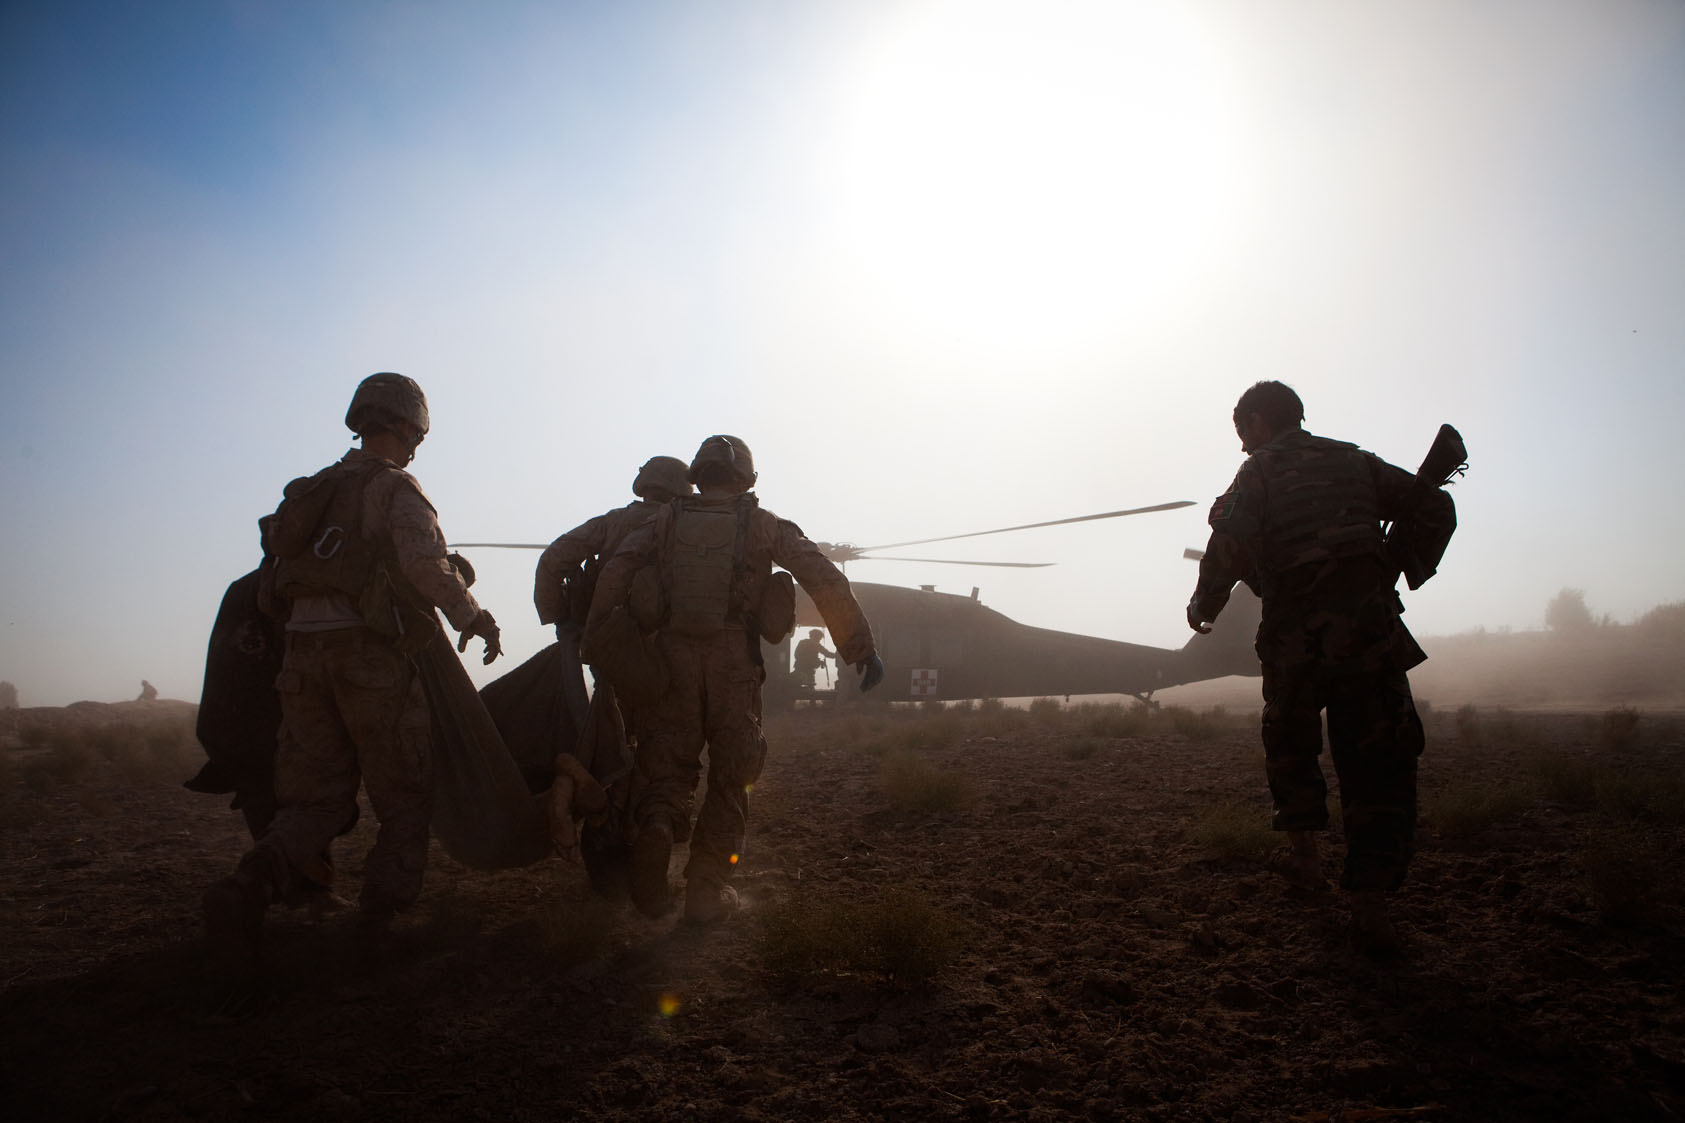 Marines and an Afghan National Army soldier carry an Afghan civilian wounded by insurgent gunfire on a stretcher to a waiting medevac helicopter in southern Helmand Province, Afghanistan, November 22, 2010.